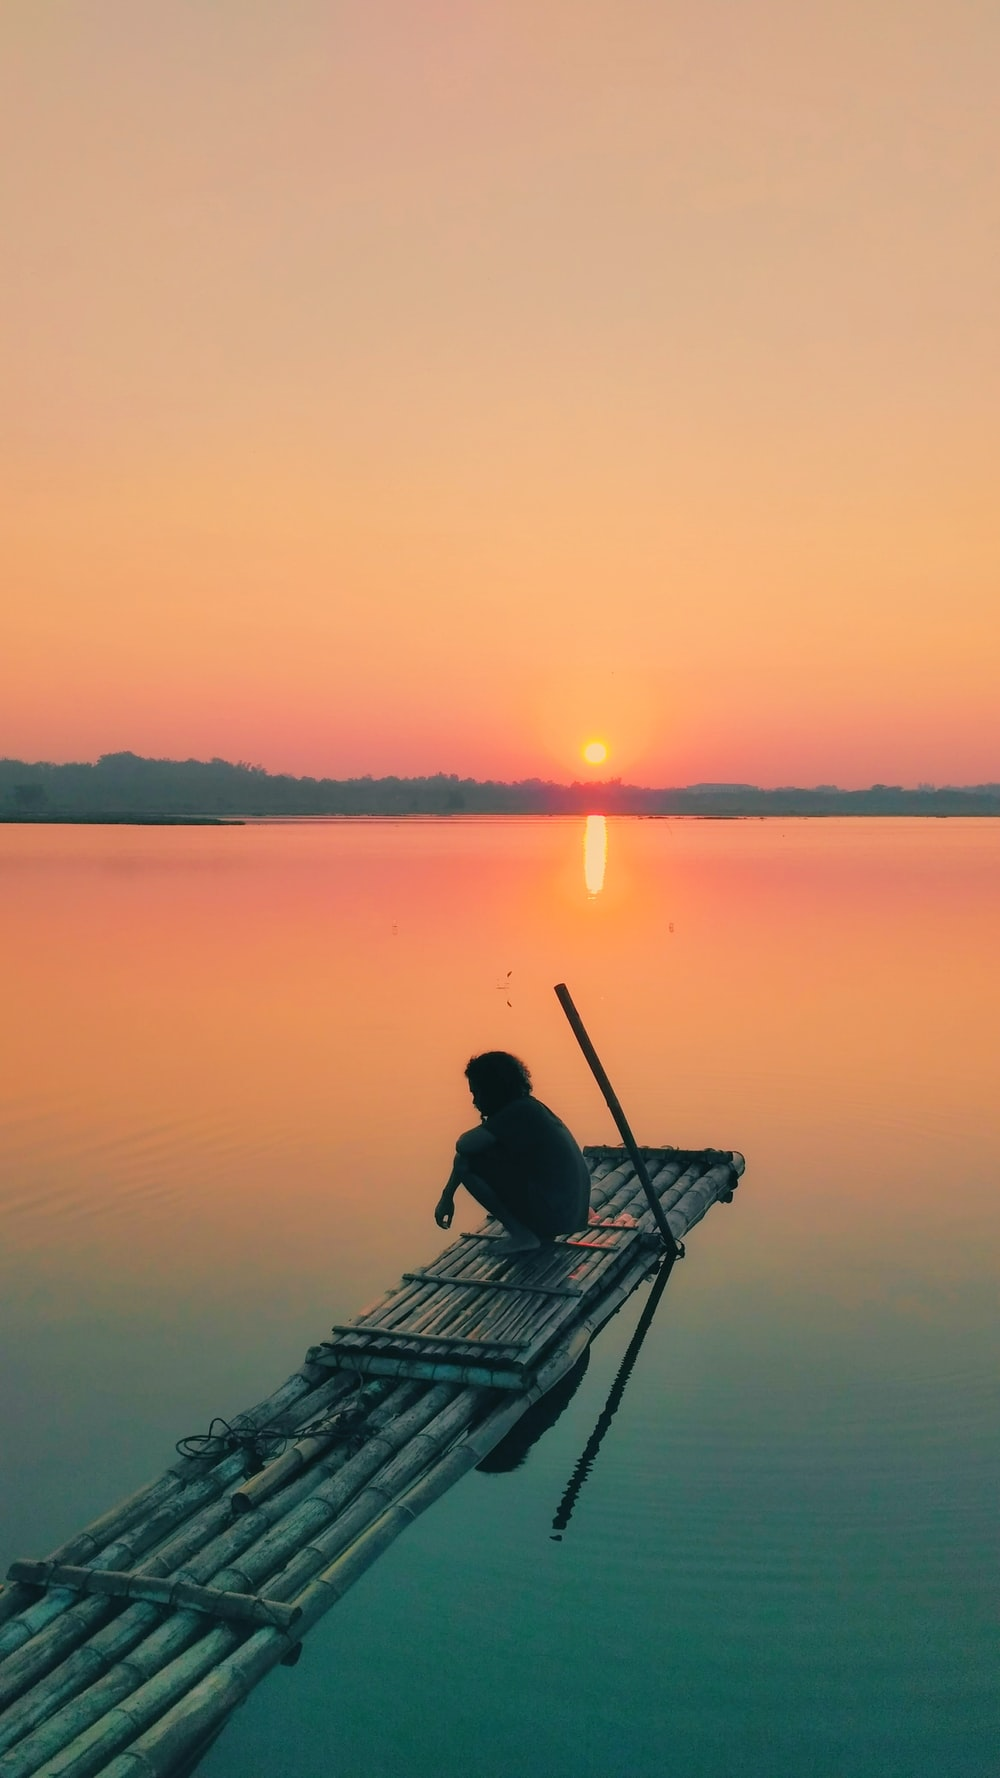 person sitting on bamboo boat